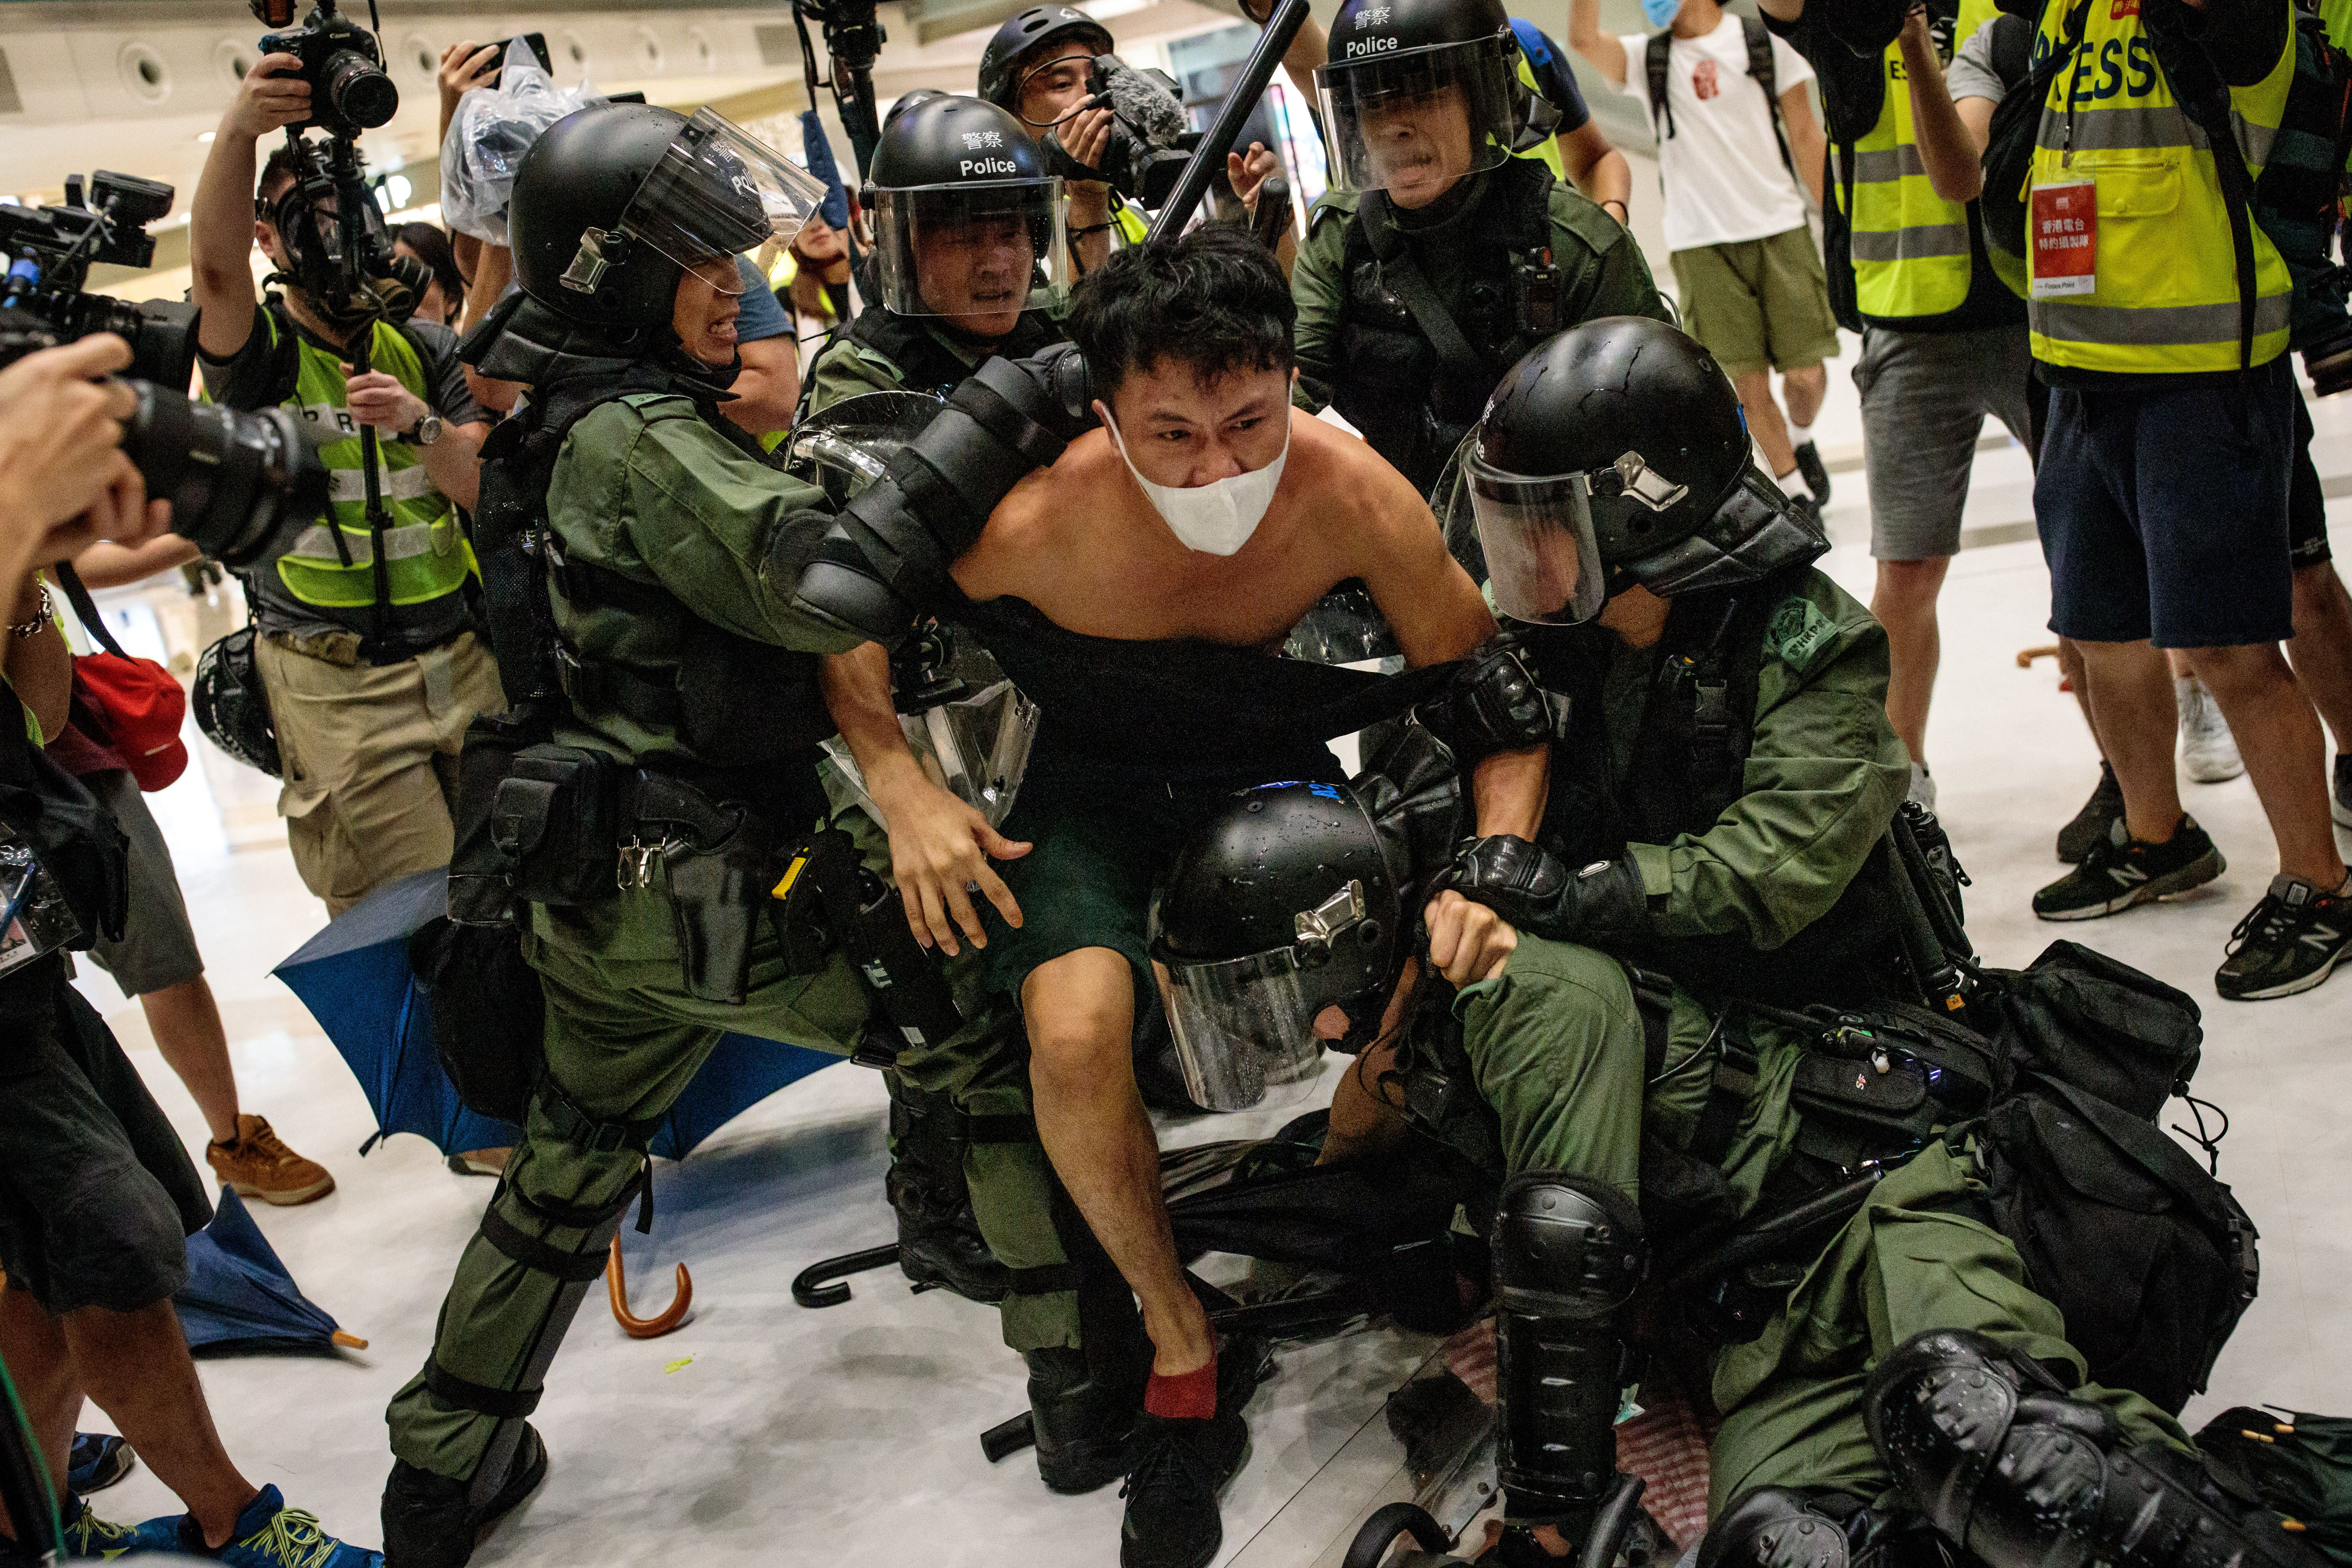 A protester tries to break free of riot police. Police later said 37 people were arrested from Sunday's rally.